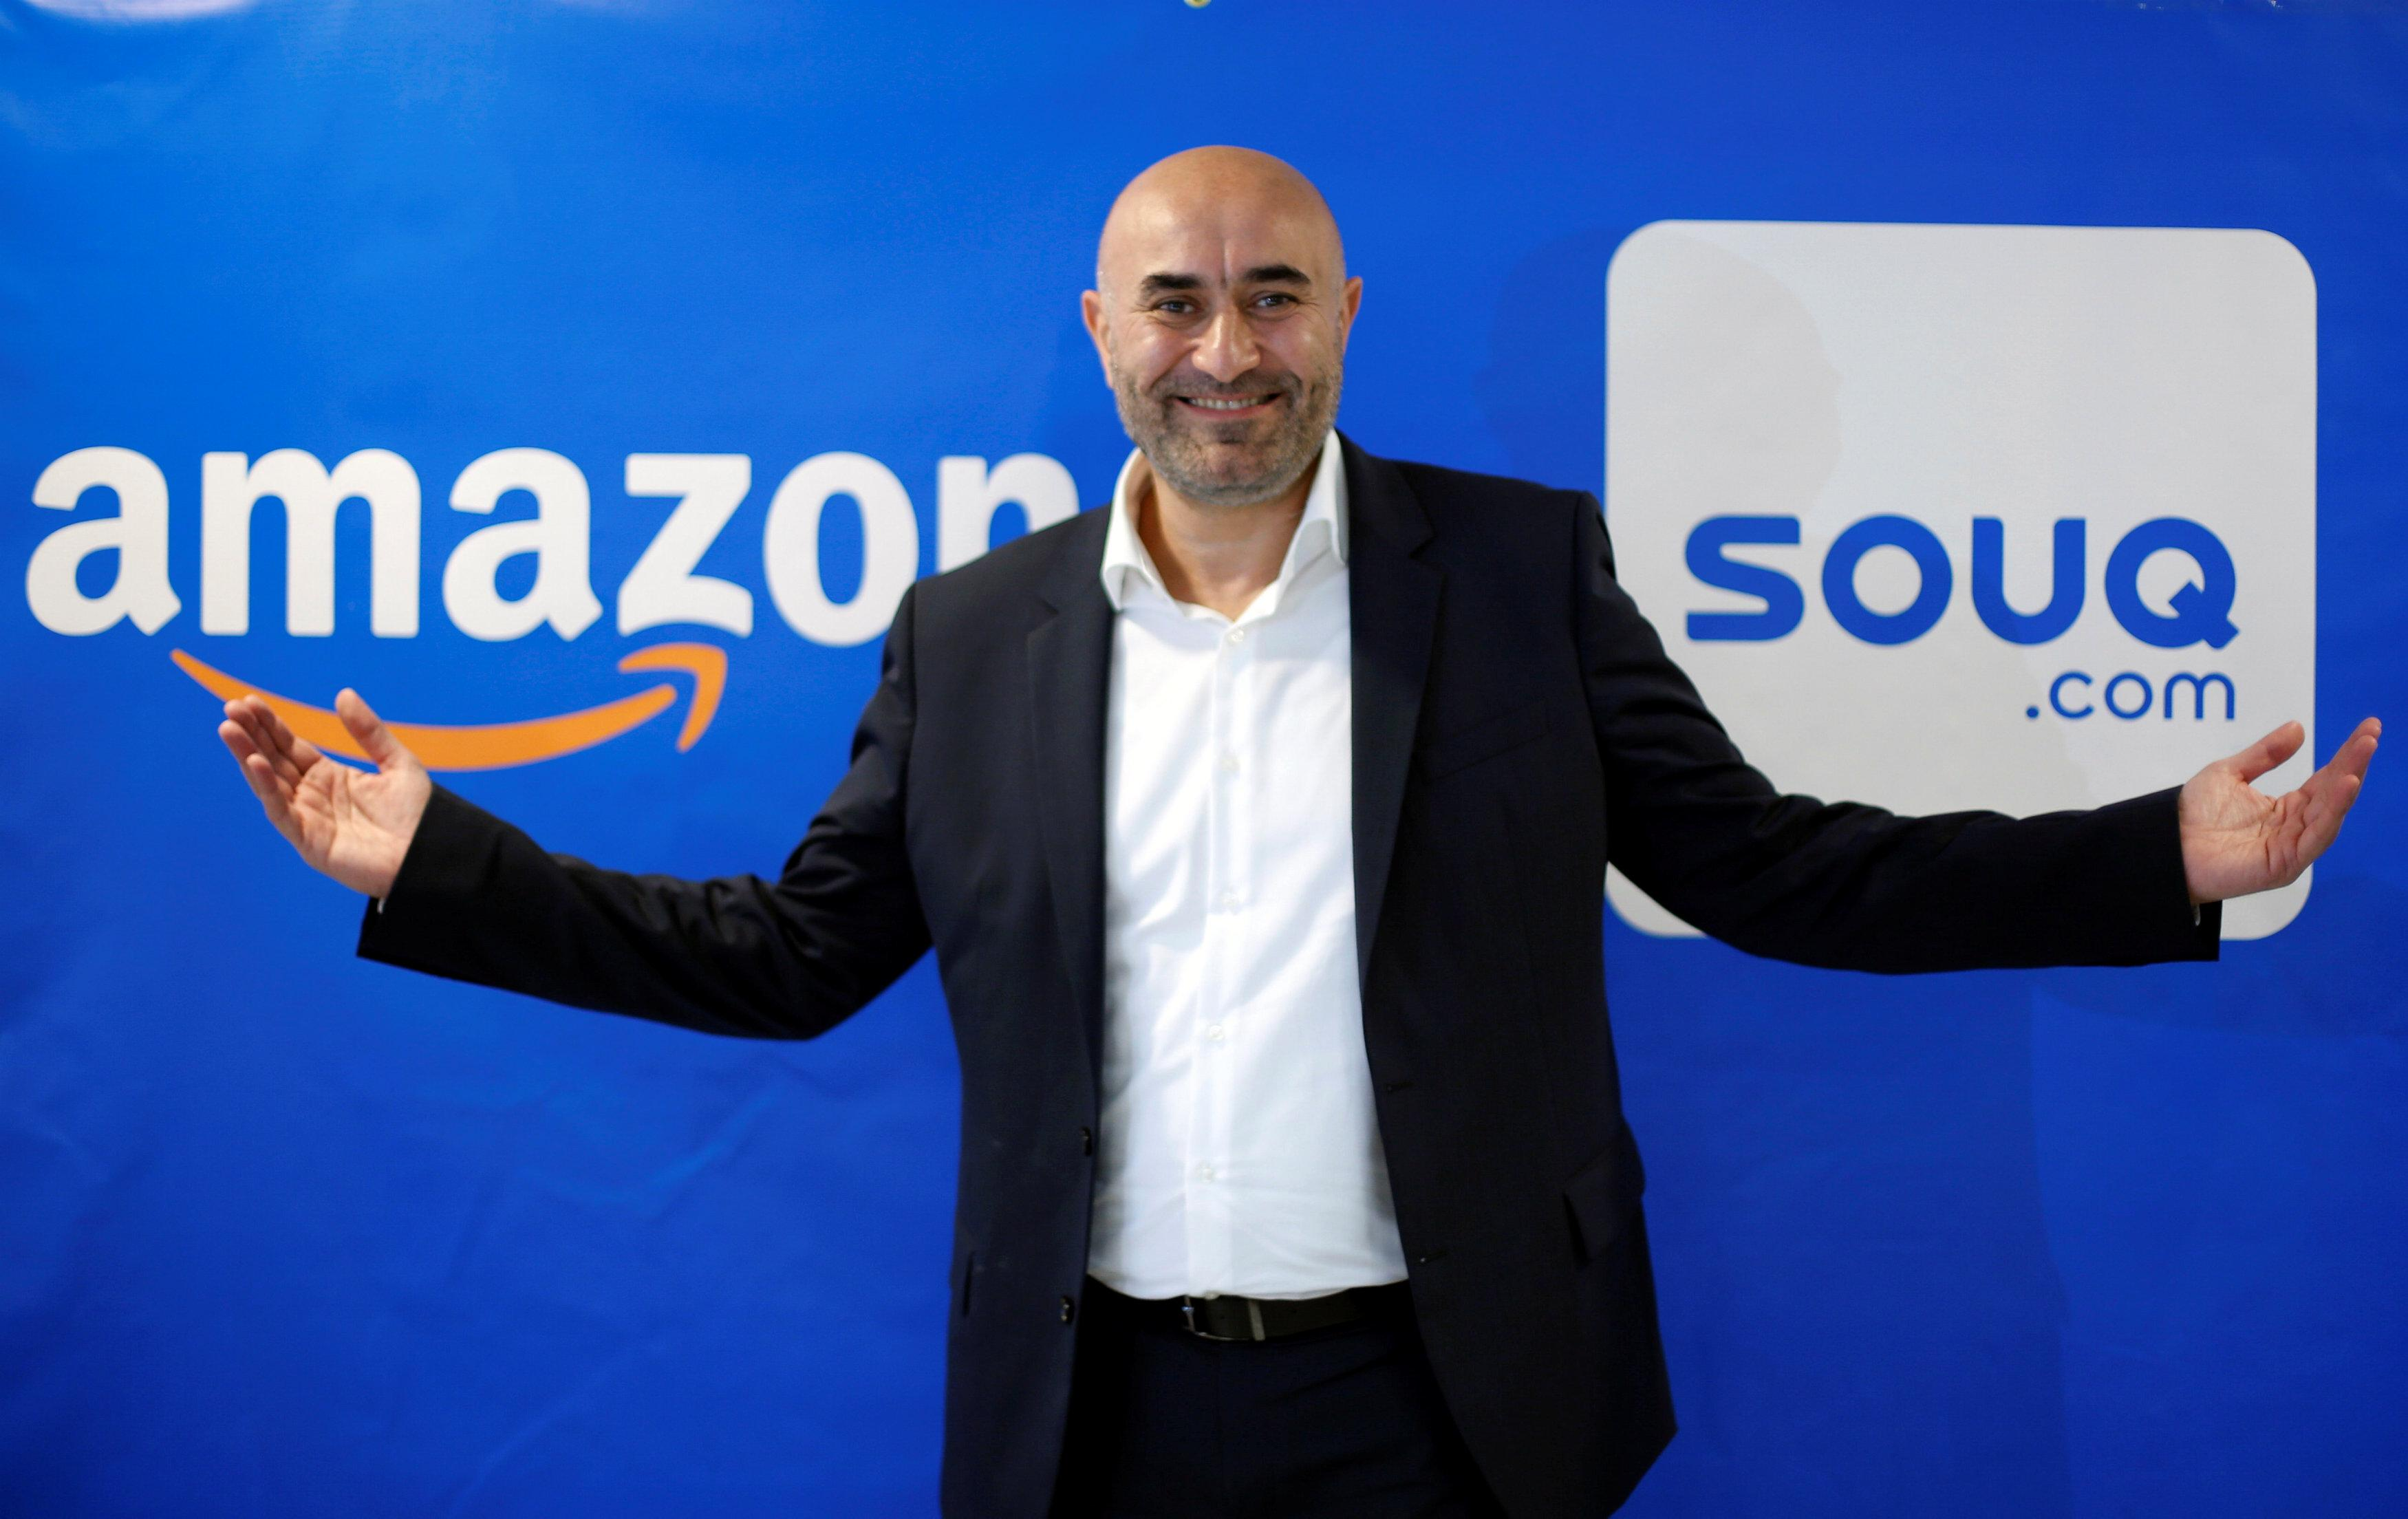 Amazon clinches deal to buy Middle East online retailer Souq